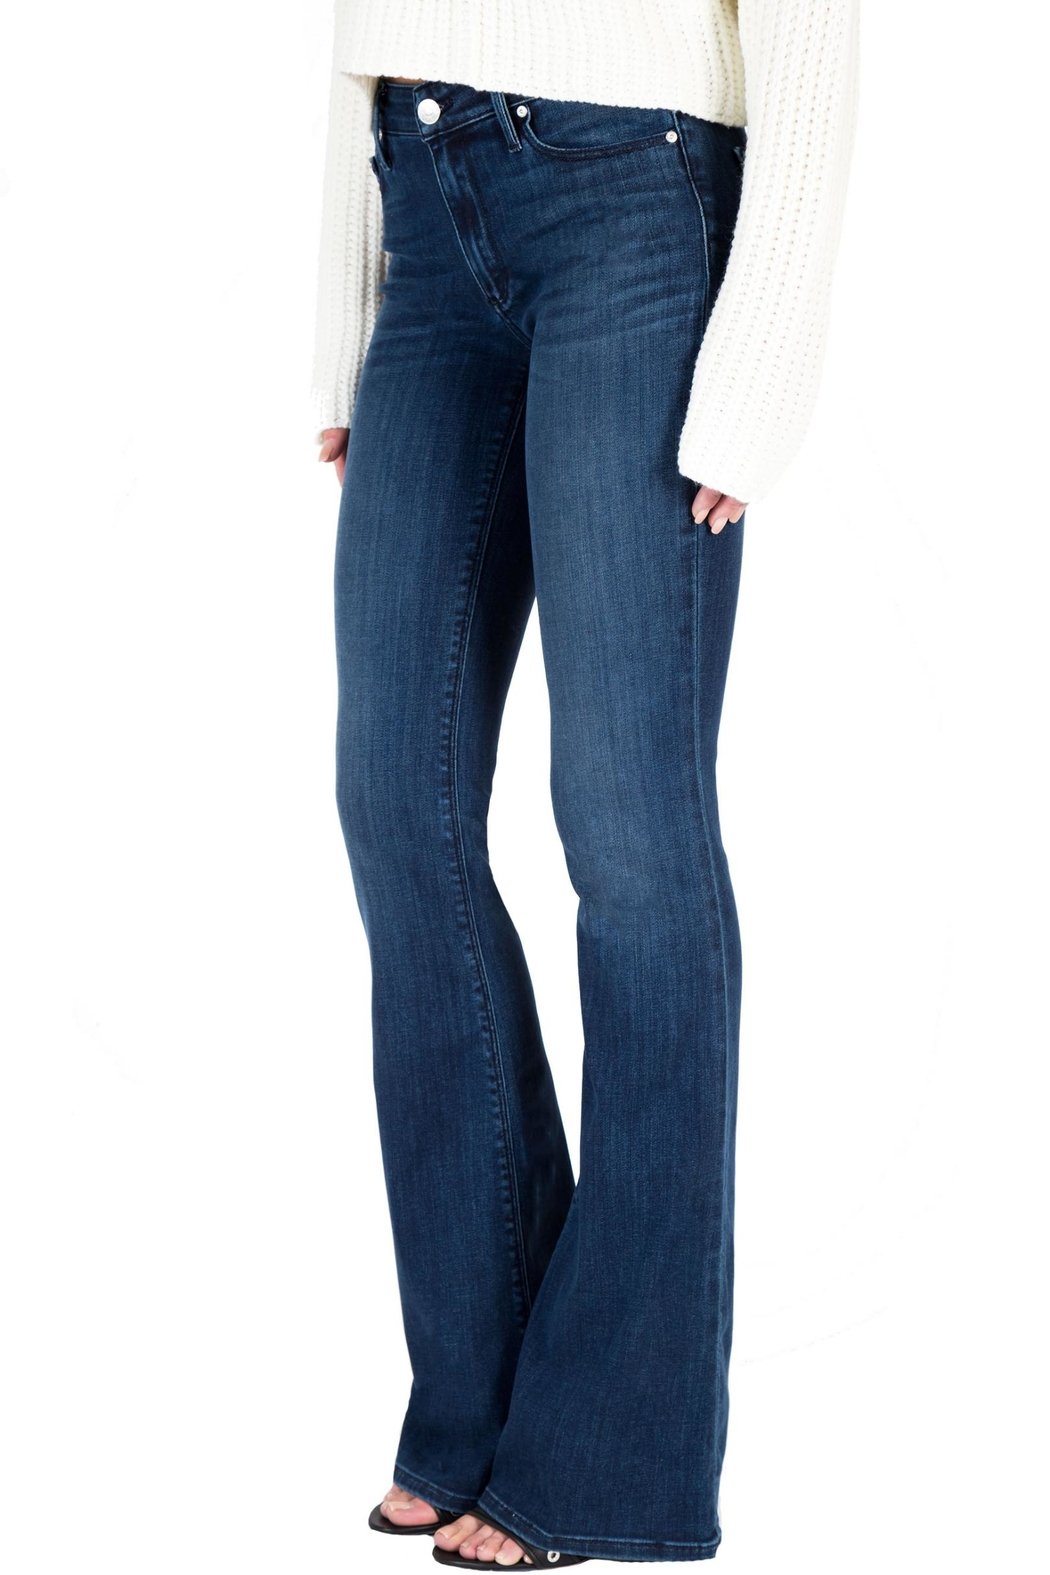 Black Orchid Denim Mia Mid-Rise Skinny-Flare - Front Full Image